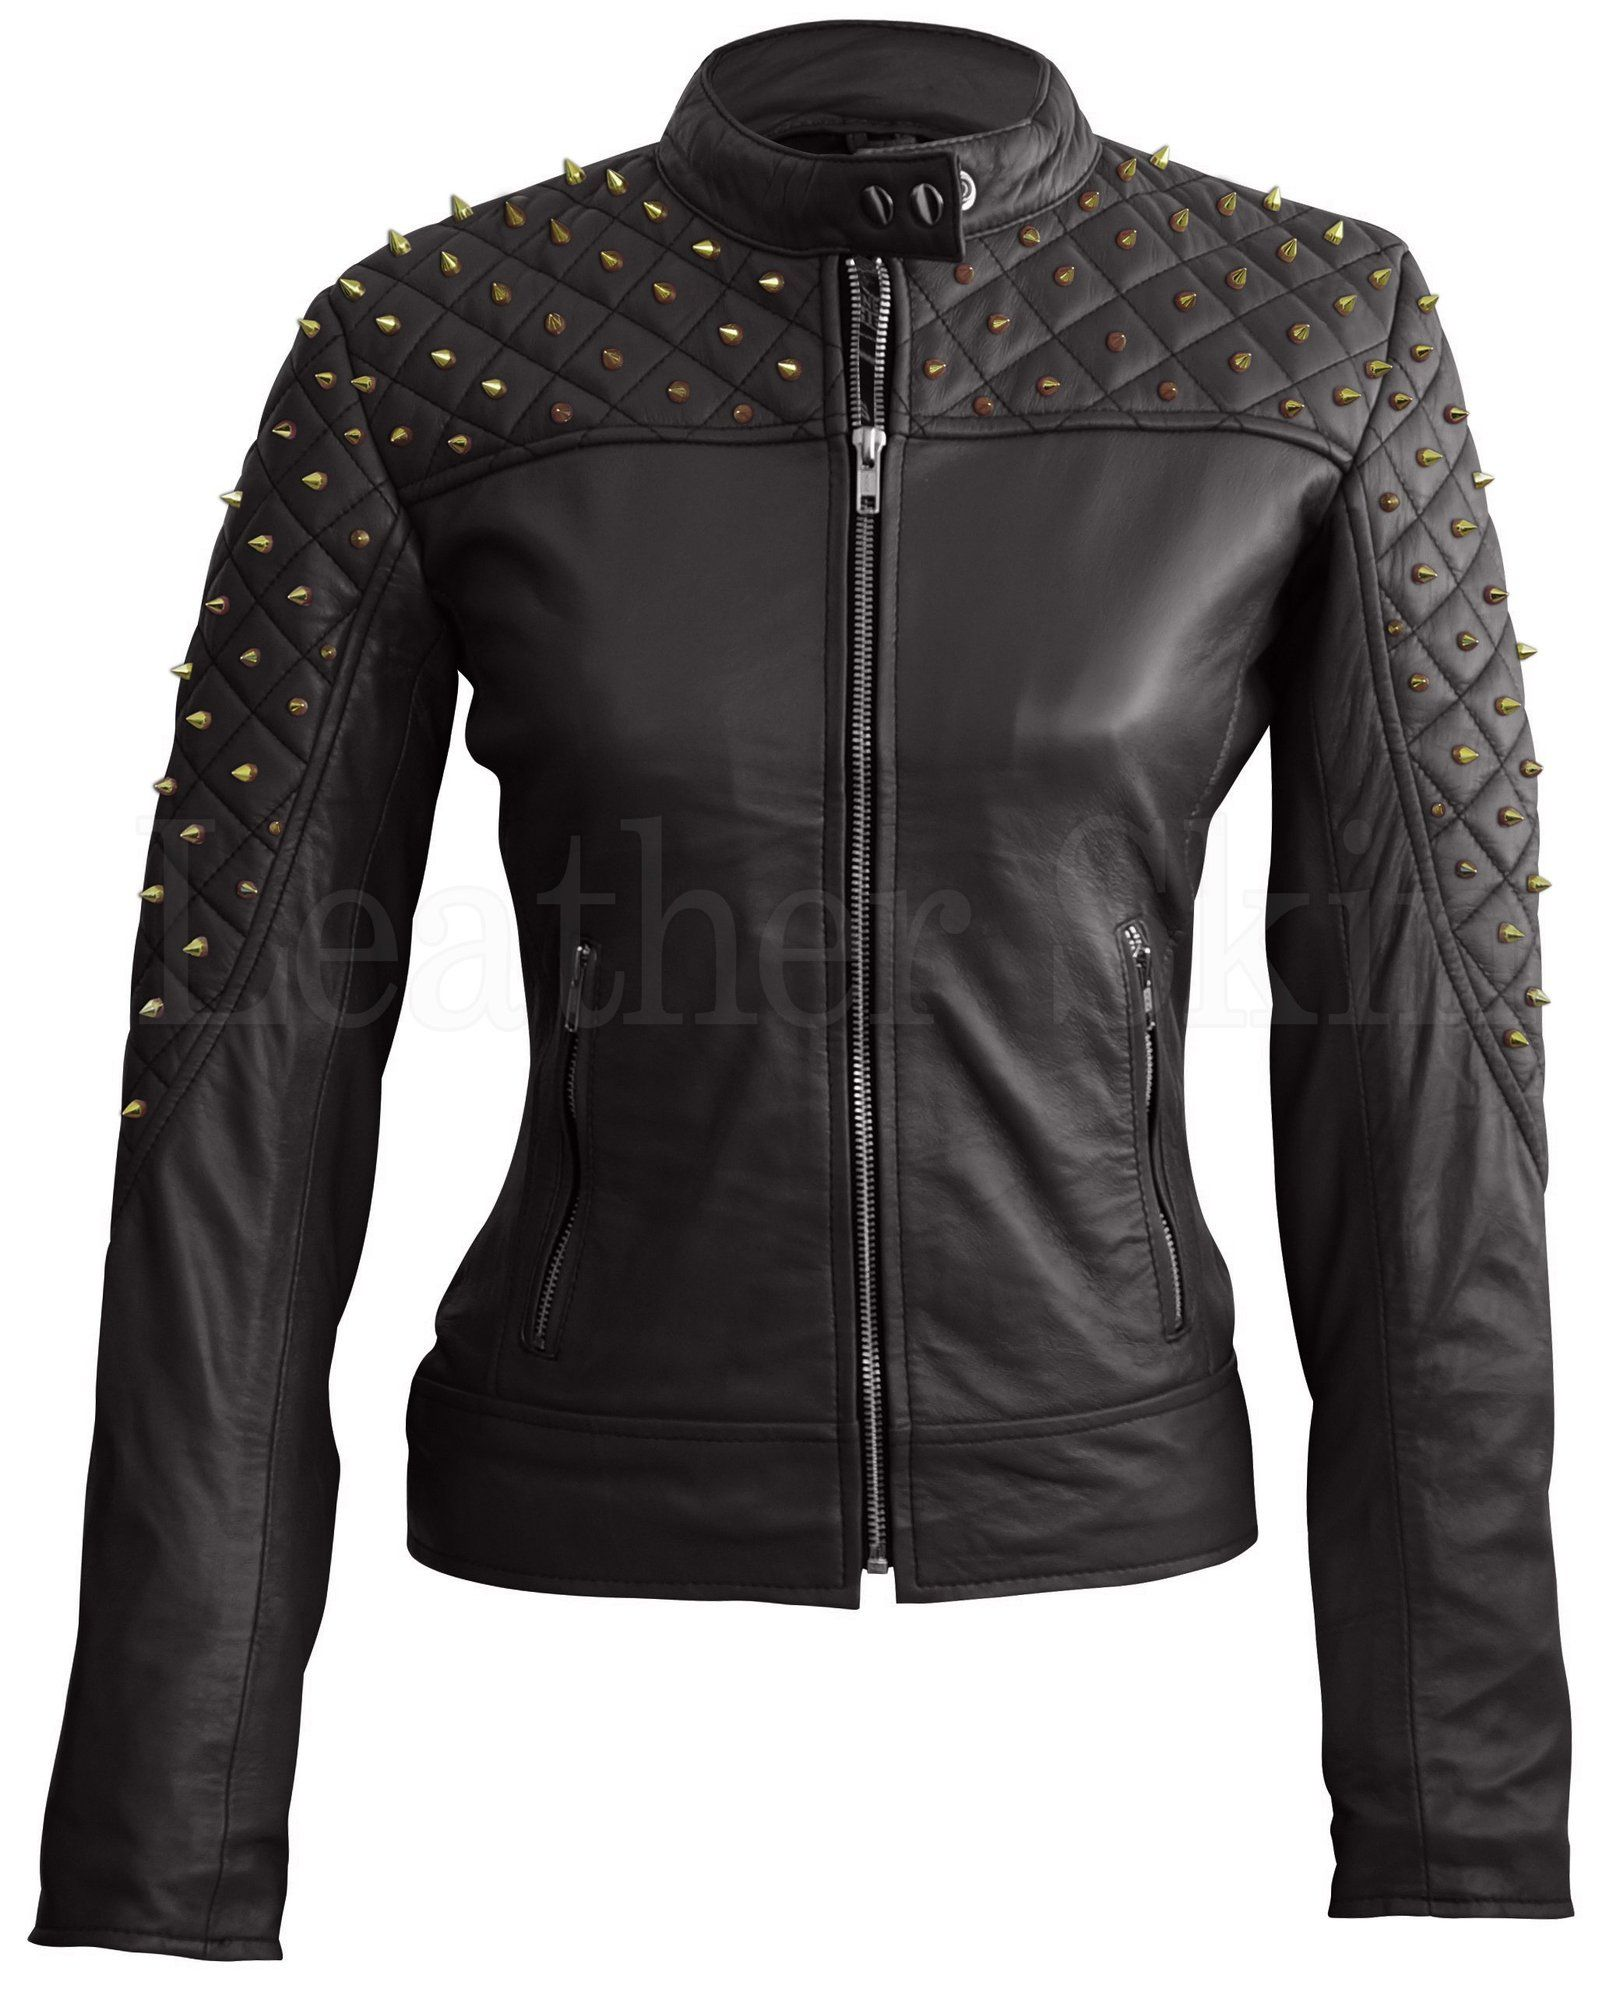 Leather Skin Women Black Shoulder Quilted With Gold Studs Studded Genuine Leather Jacket Studded Leather Jacket Leather Jackets Women Leather Jacket [ 2000 x 1620 Pixel ]